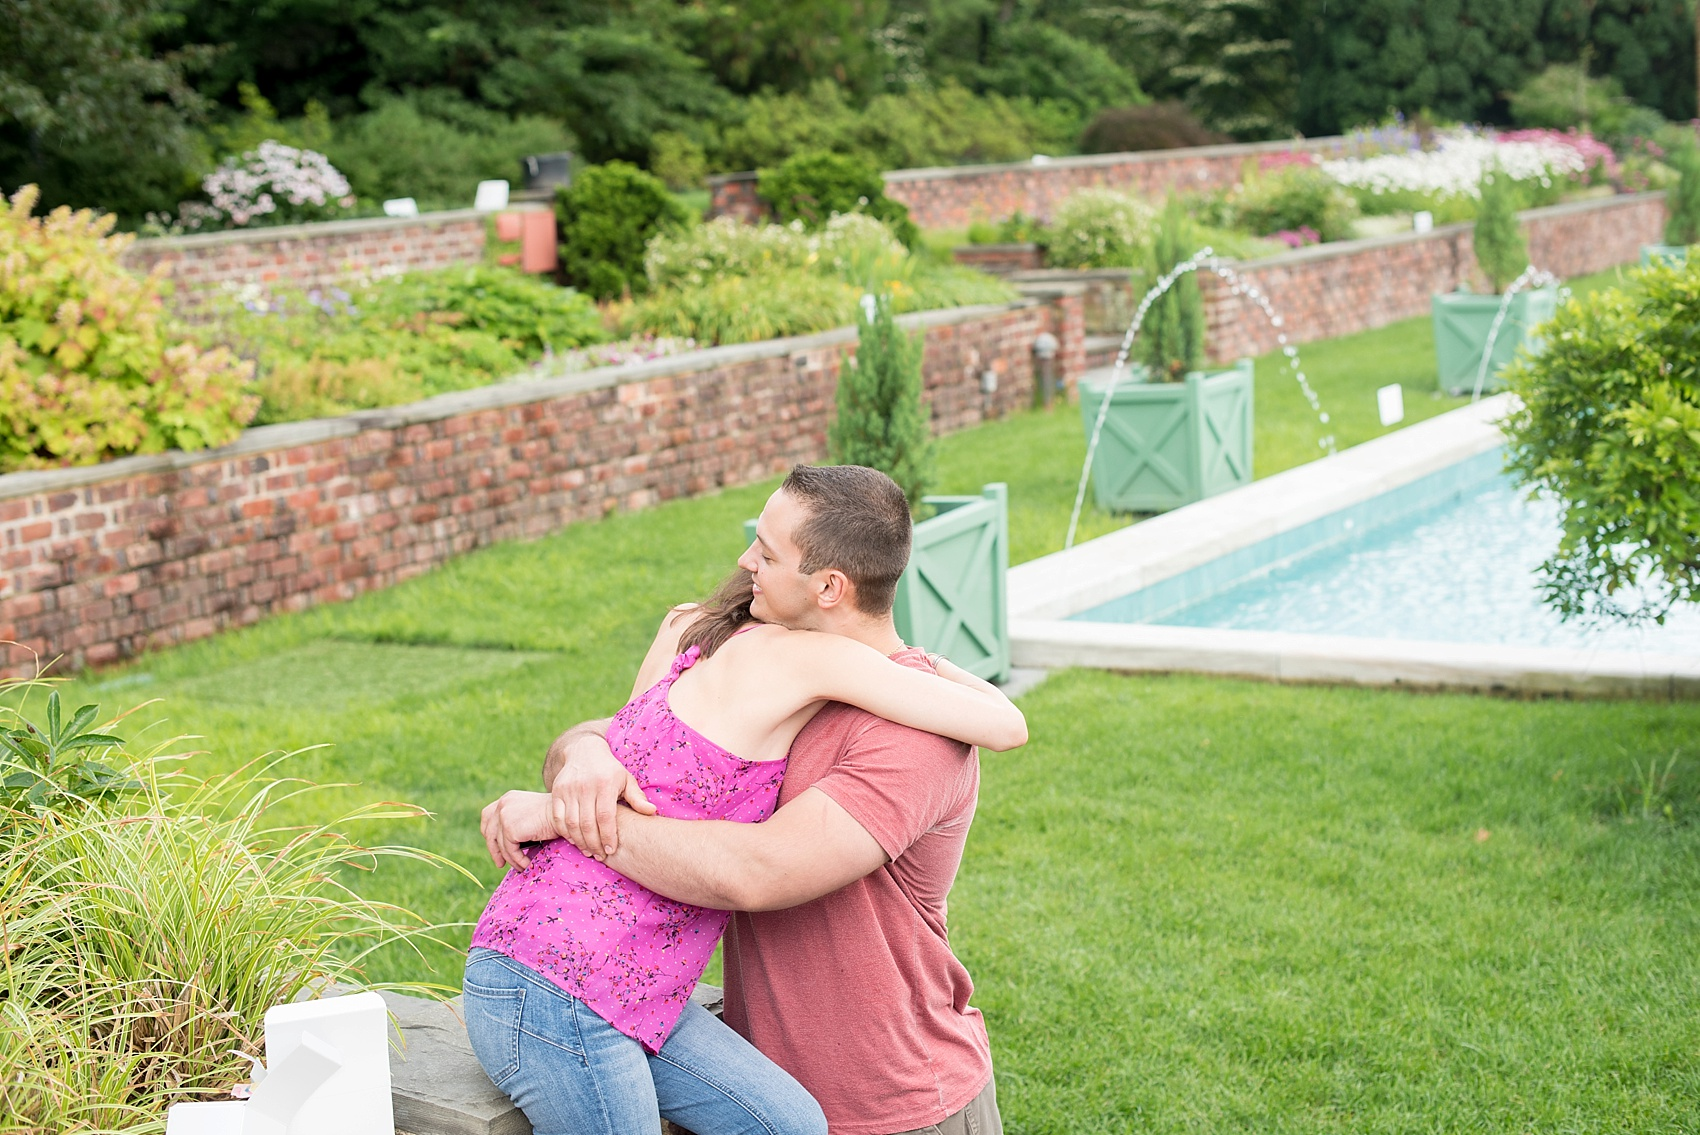 Long Island Proposal ideas at Oyster Bay Planting Fields. Photos by Mikkel Paige Photography, Long Island wedding photographer.